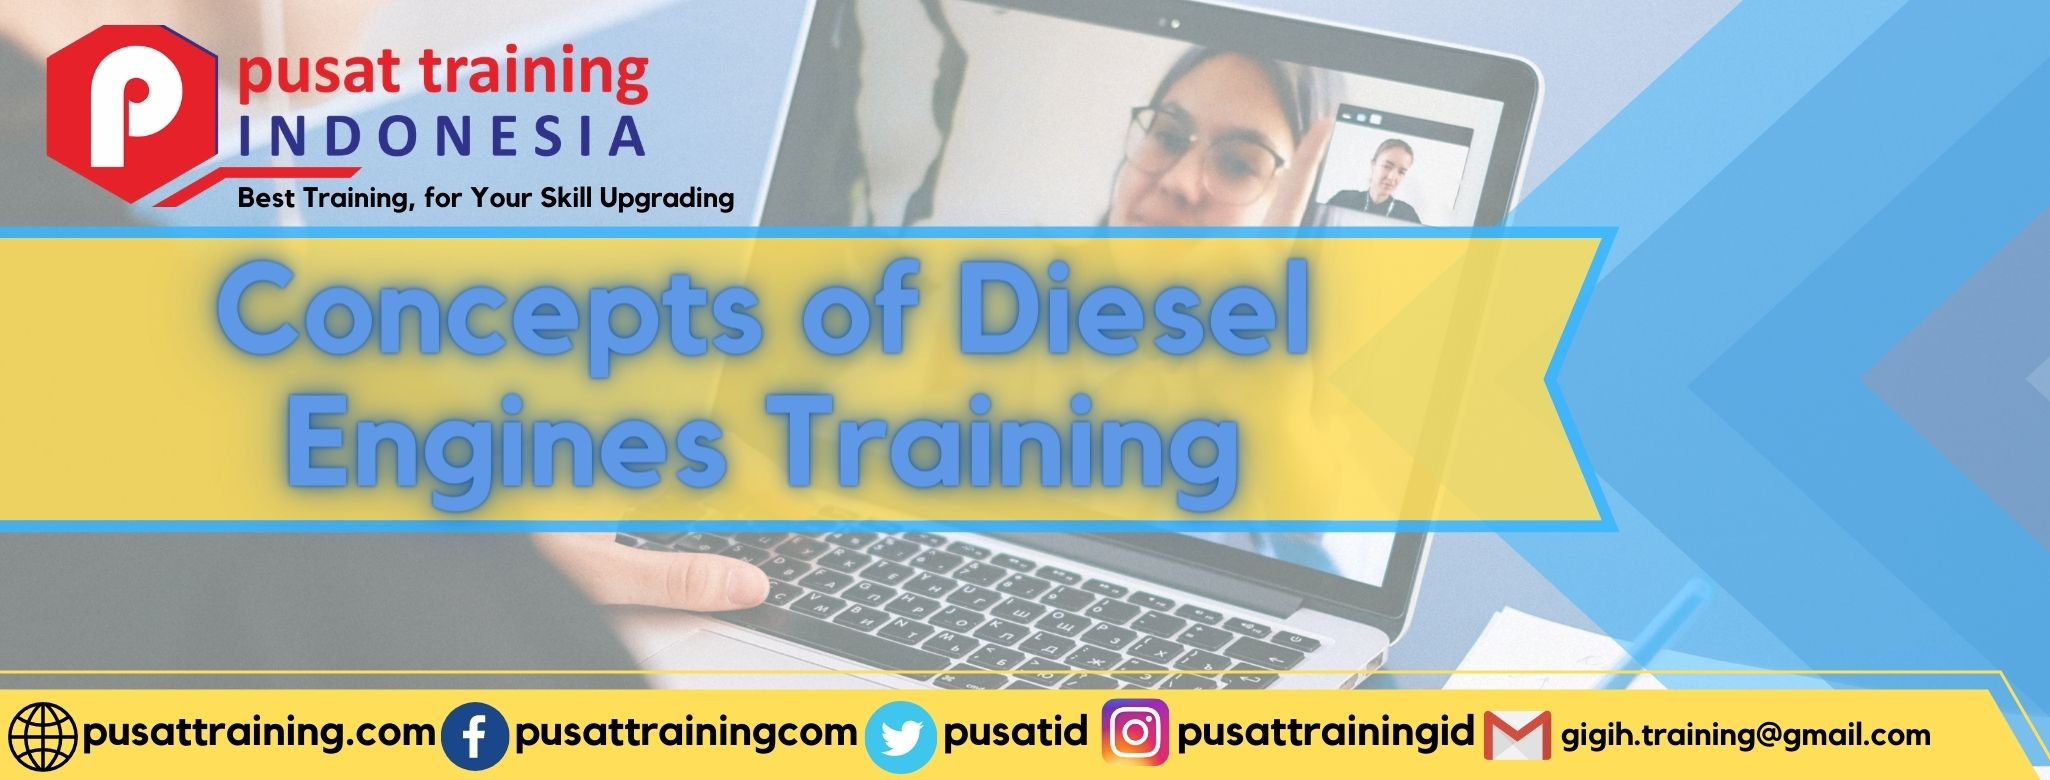 Concepts of Diesel Engines Training